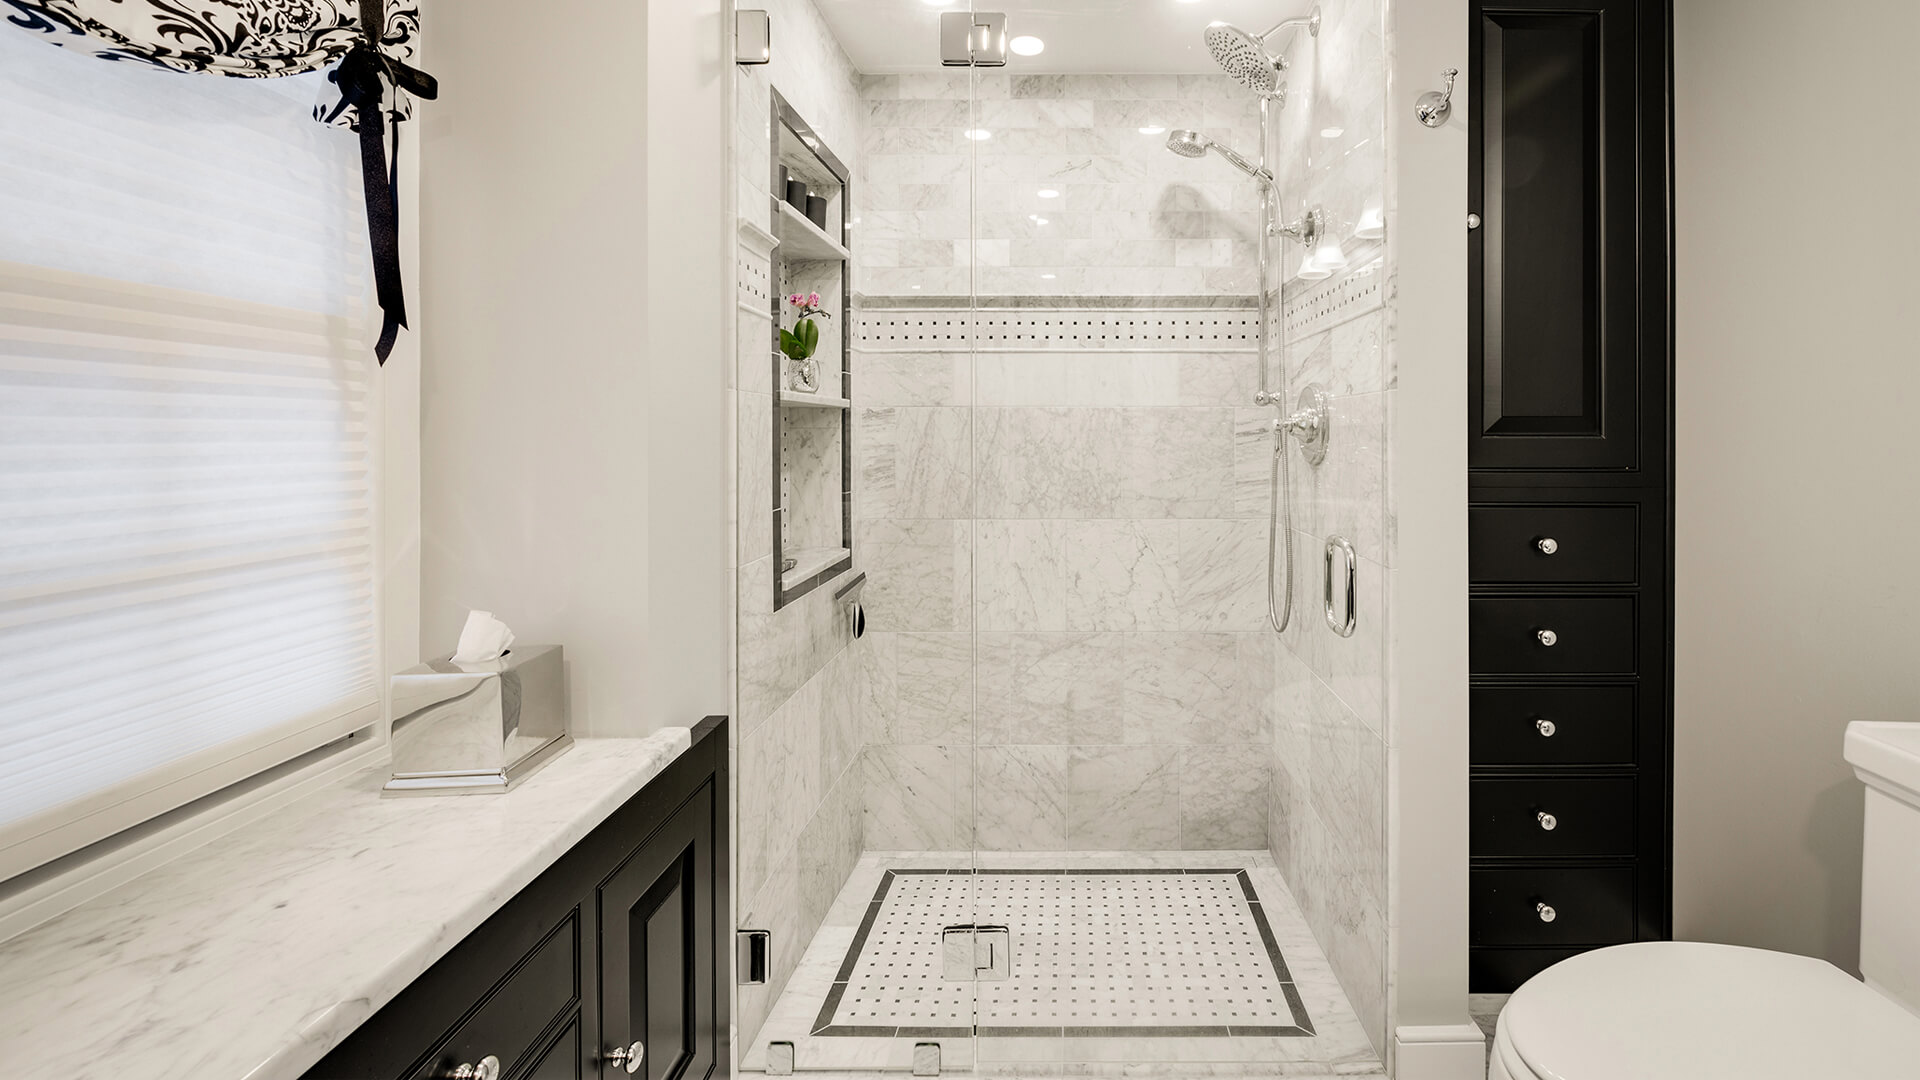 Our Unique Design Build Process Provides The Opportunity To Deliver  Unparalleled Craftsmanship To Every Bathroom Renovation Project.